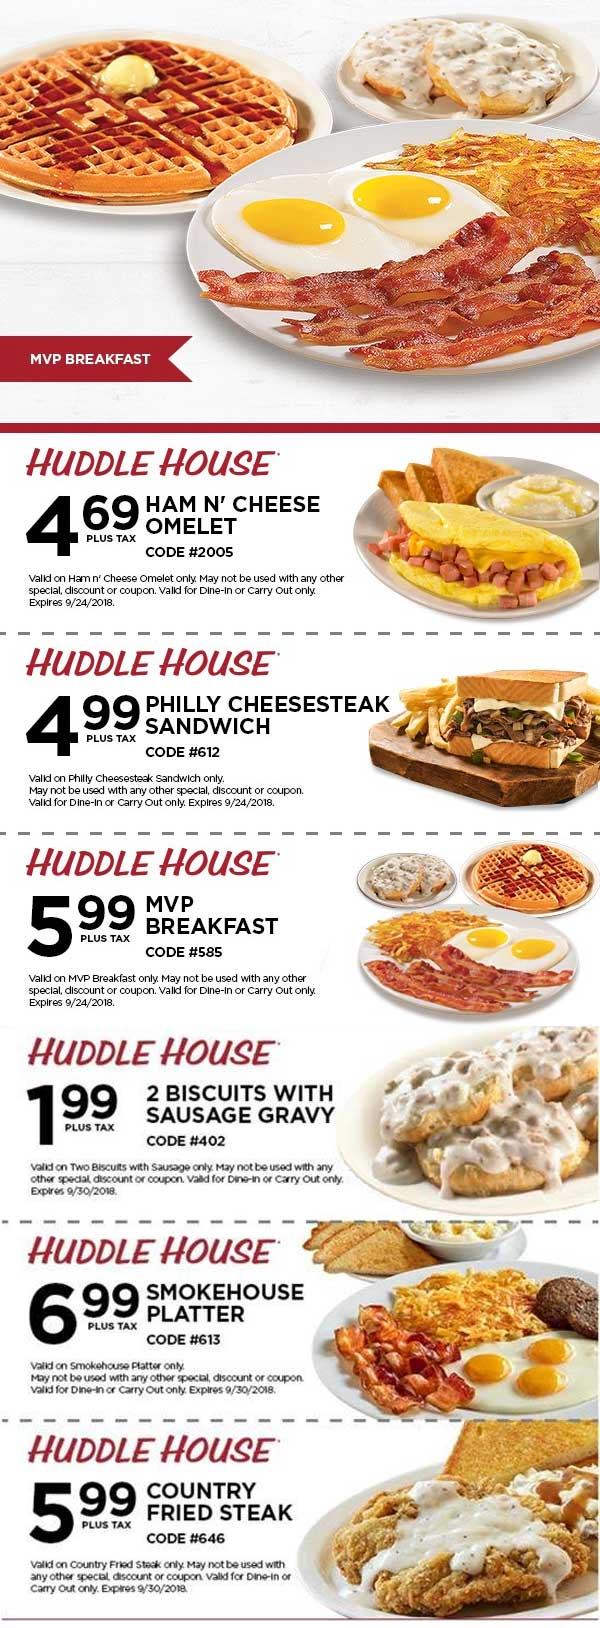 Huddle House Coupon June 2020 $6 MVP breakfast & more at Huddle House